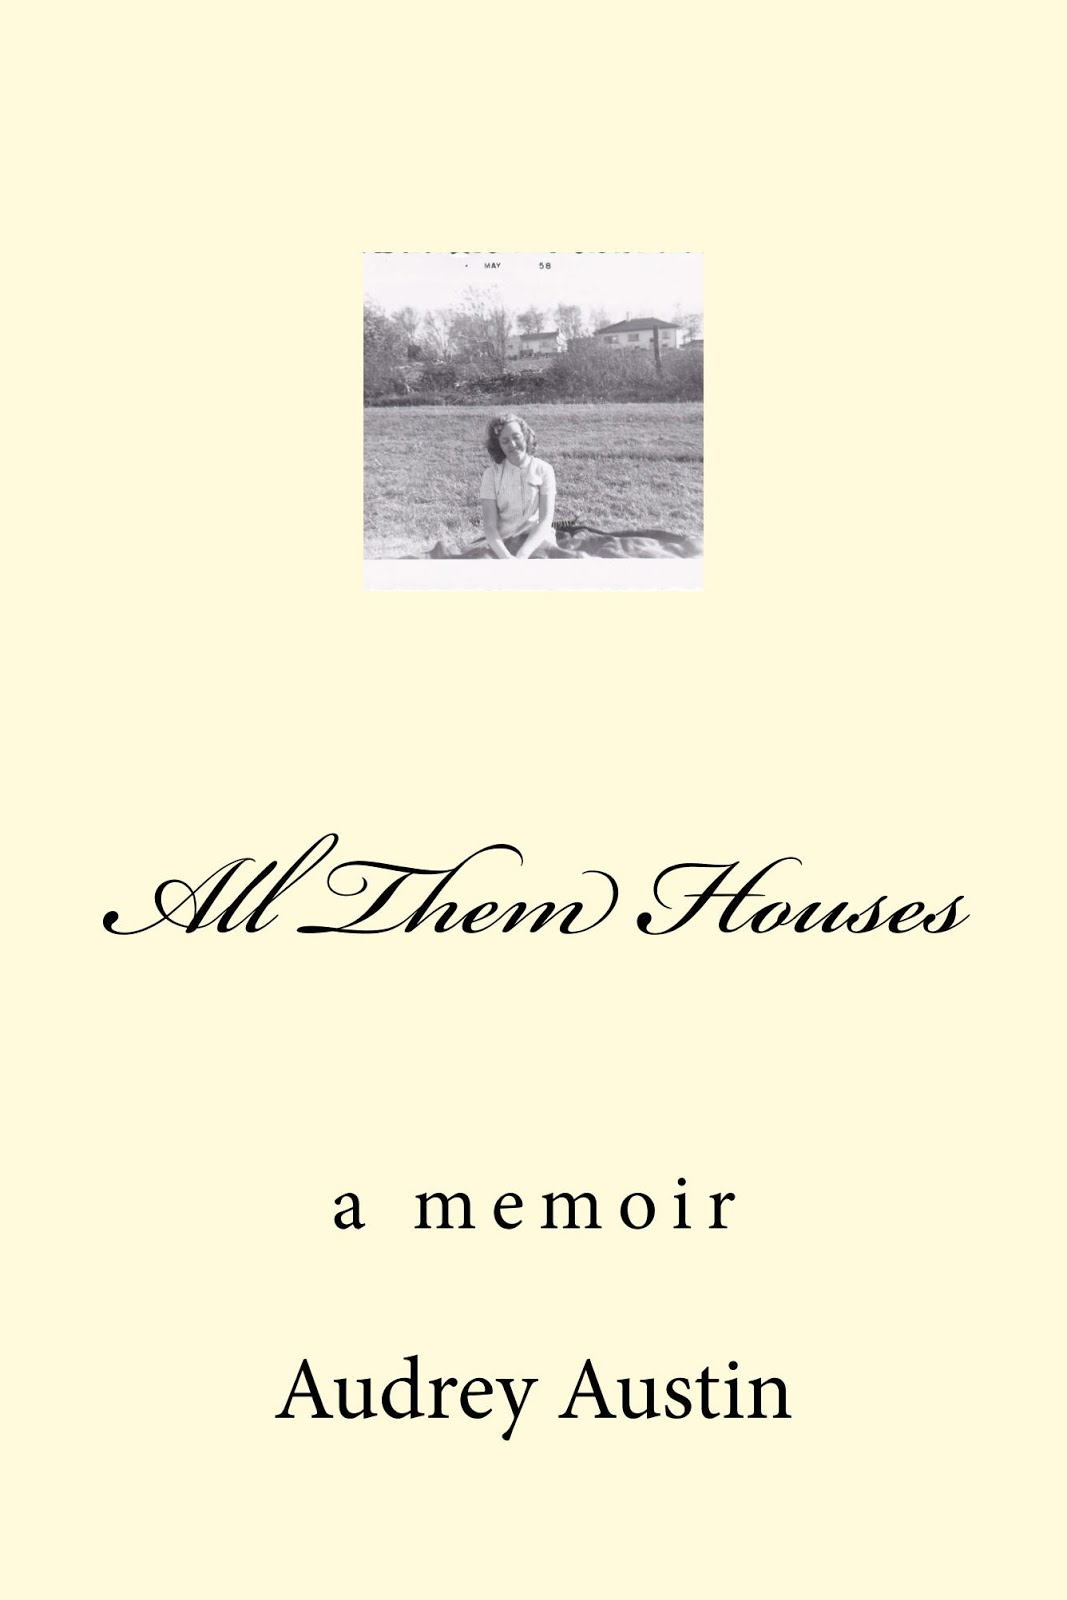 All Them Houses - a memoir